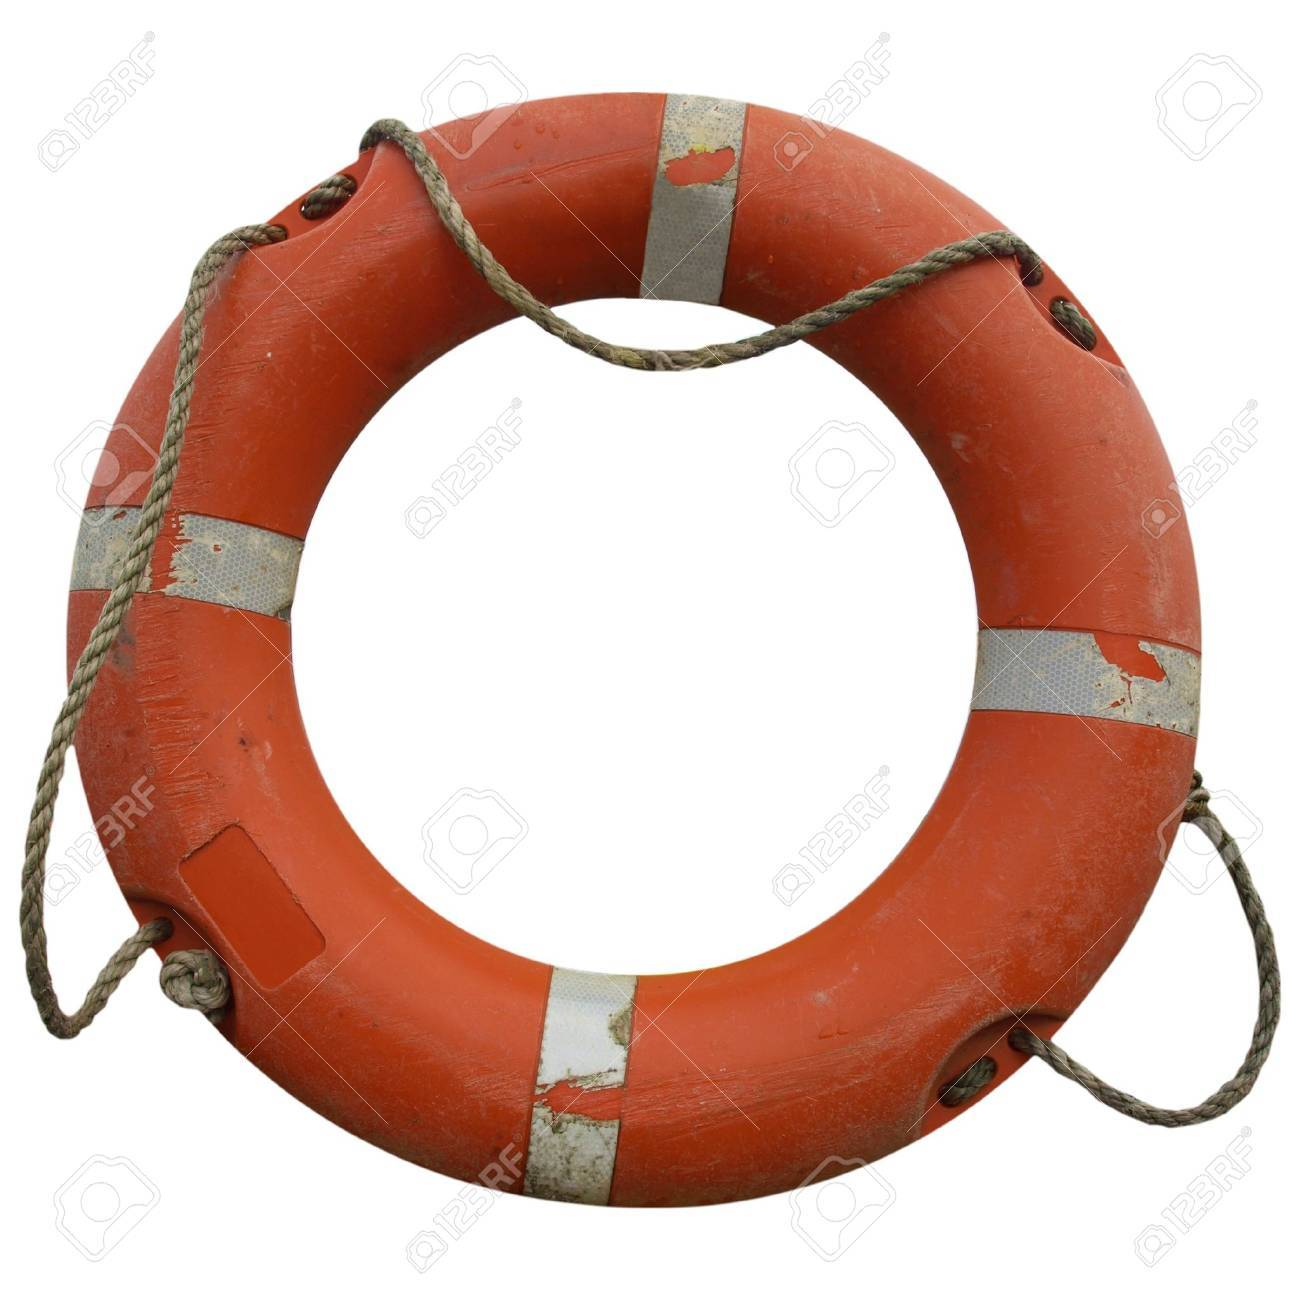 A life buoy for safety at sea - isolated over white background Stock Photo - 8070985